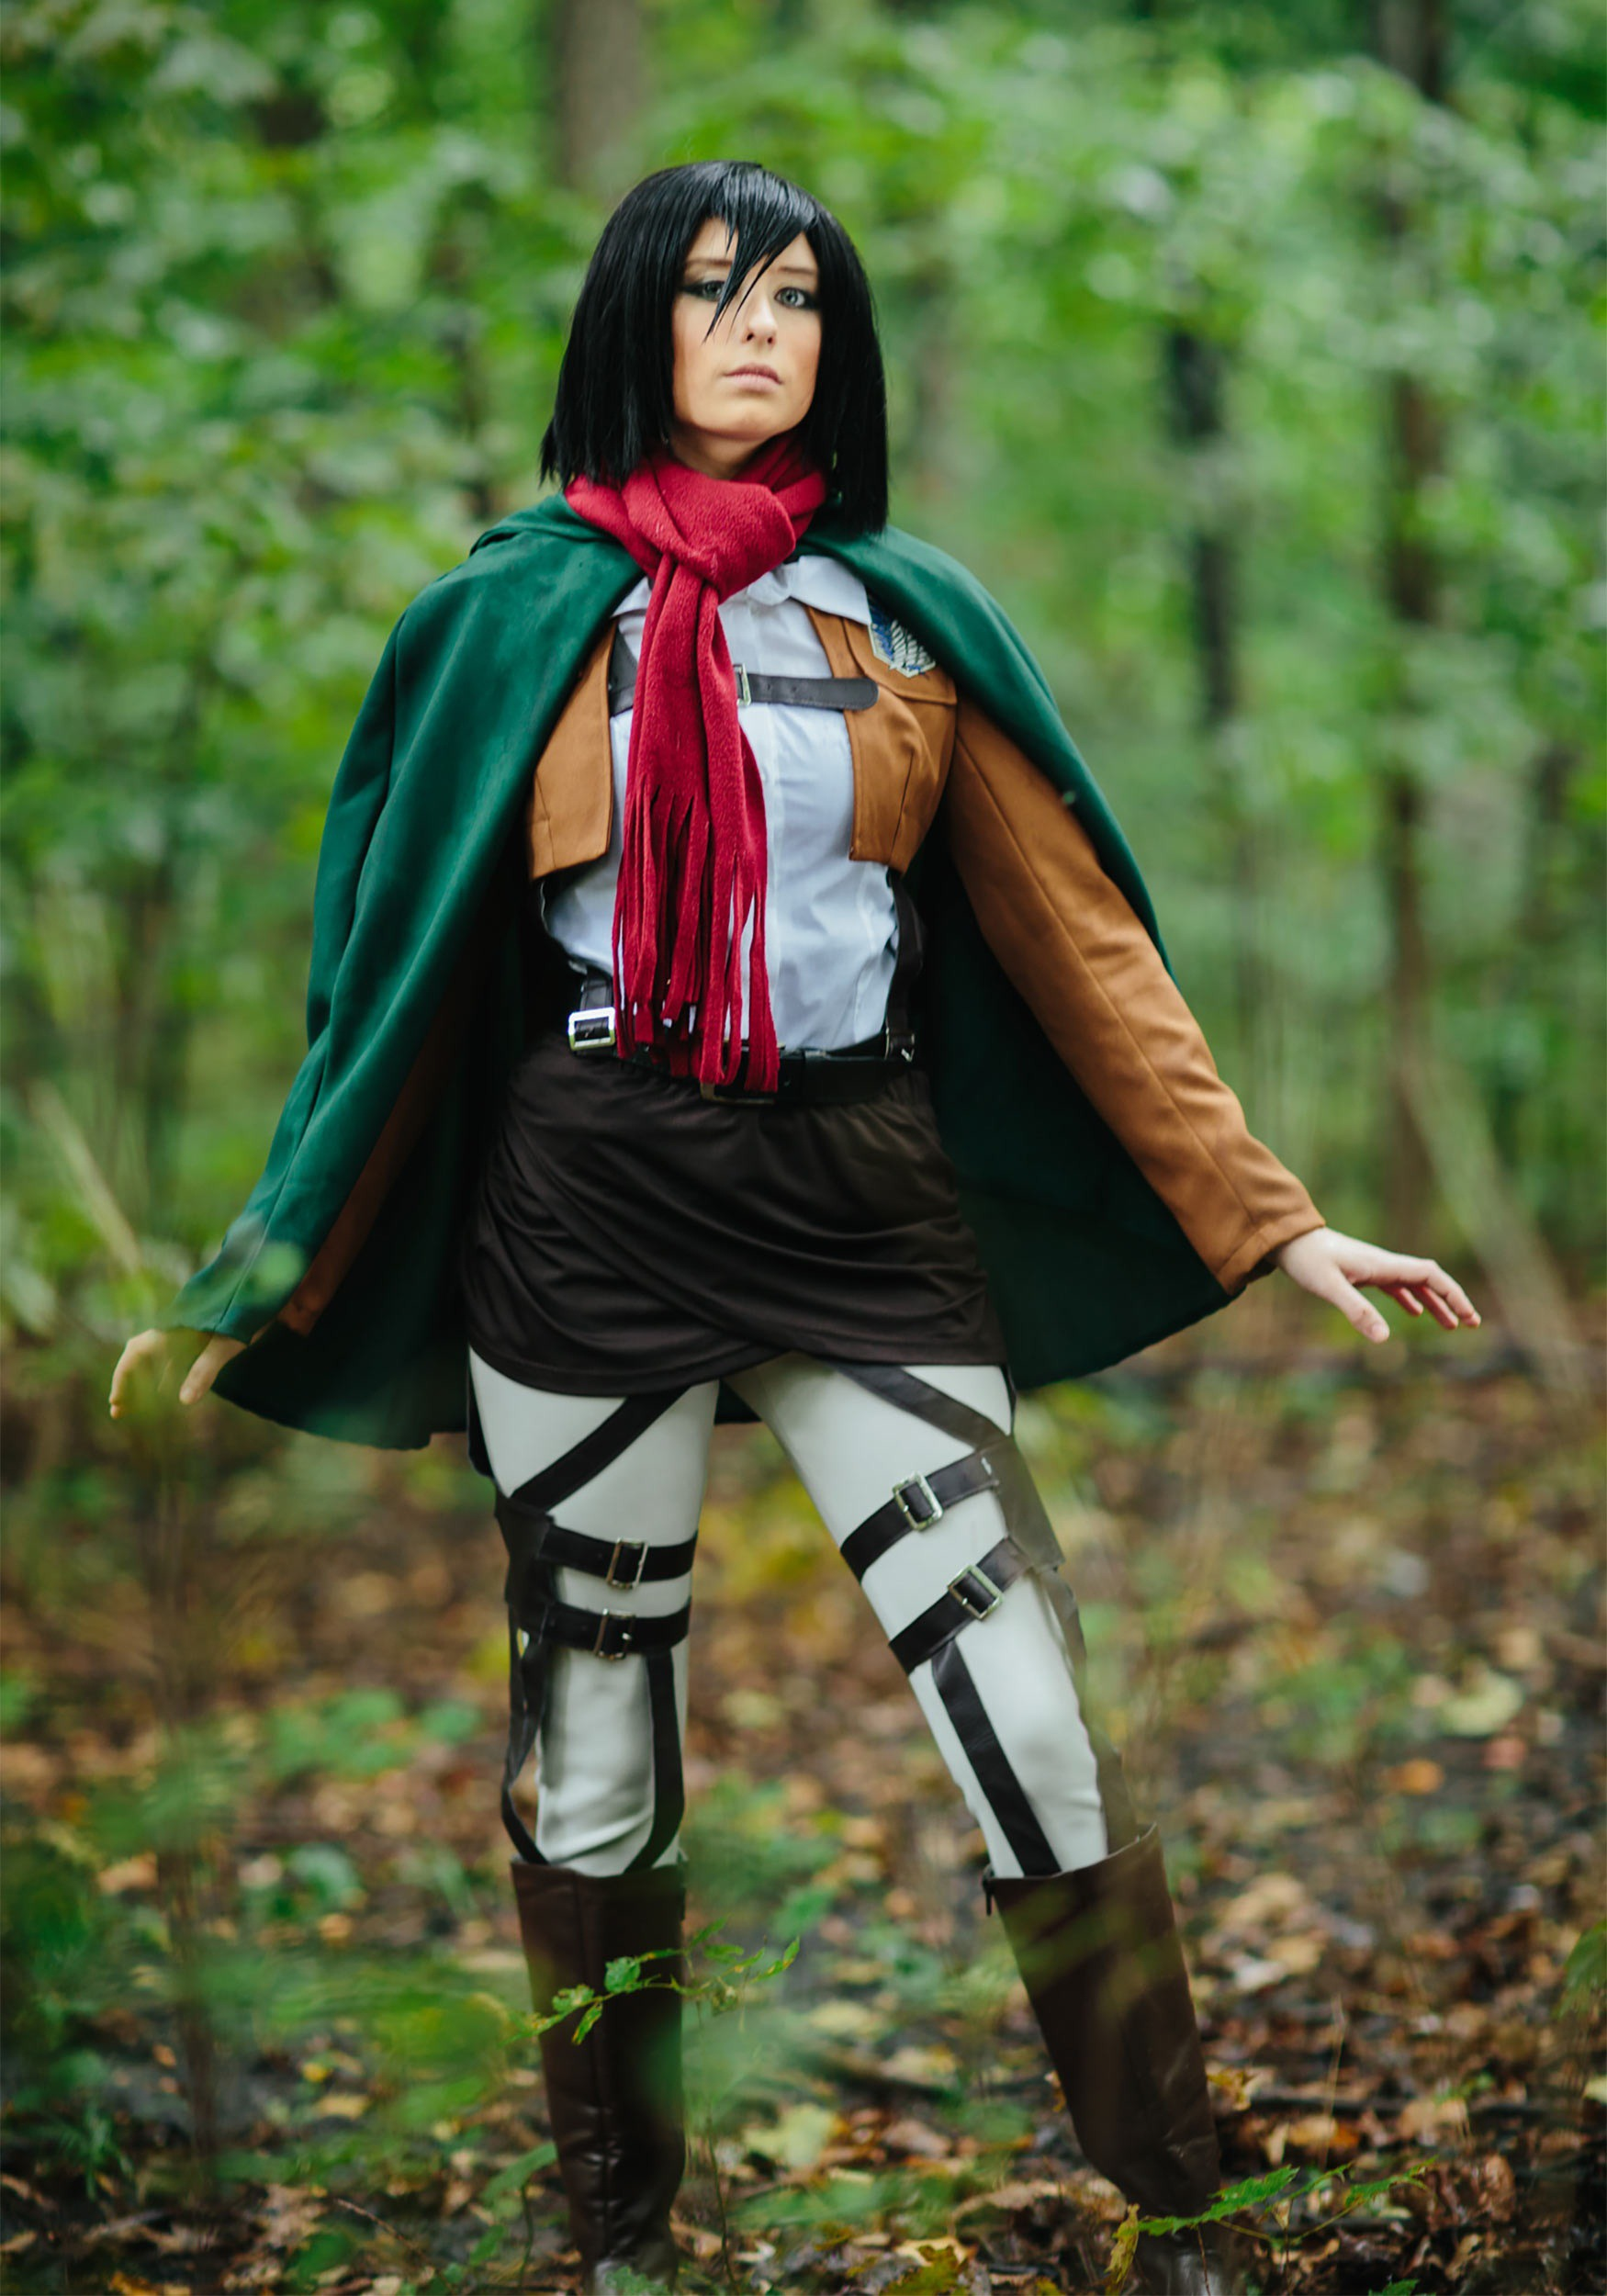 Deluxe Attack on Titan Mikasa Costume